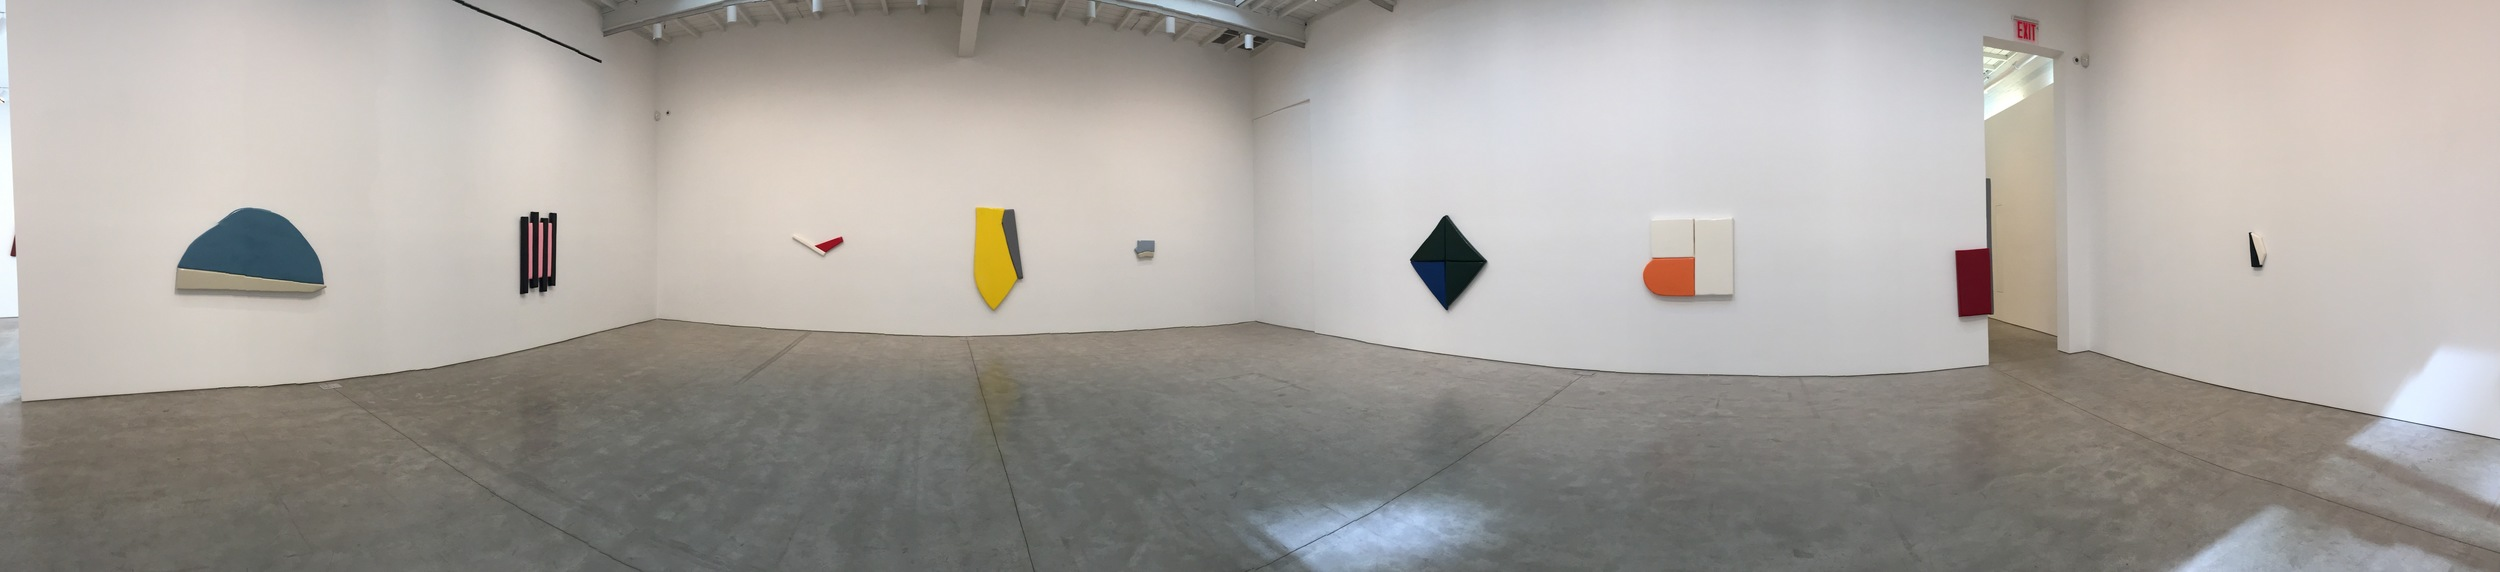 Exhibition Image, Justin Adian,  Fort Worth , Skarstedt Gallery, New York Photo Credit: Cincala Art Advisory